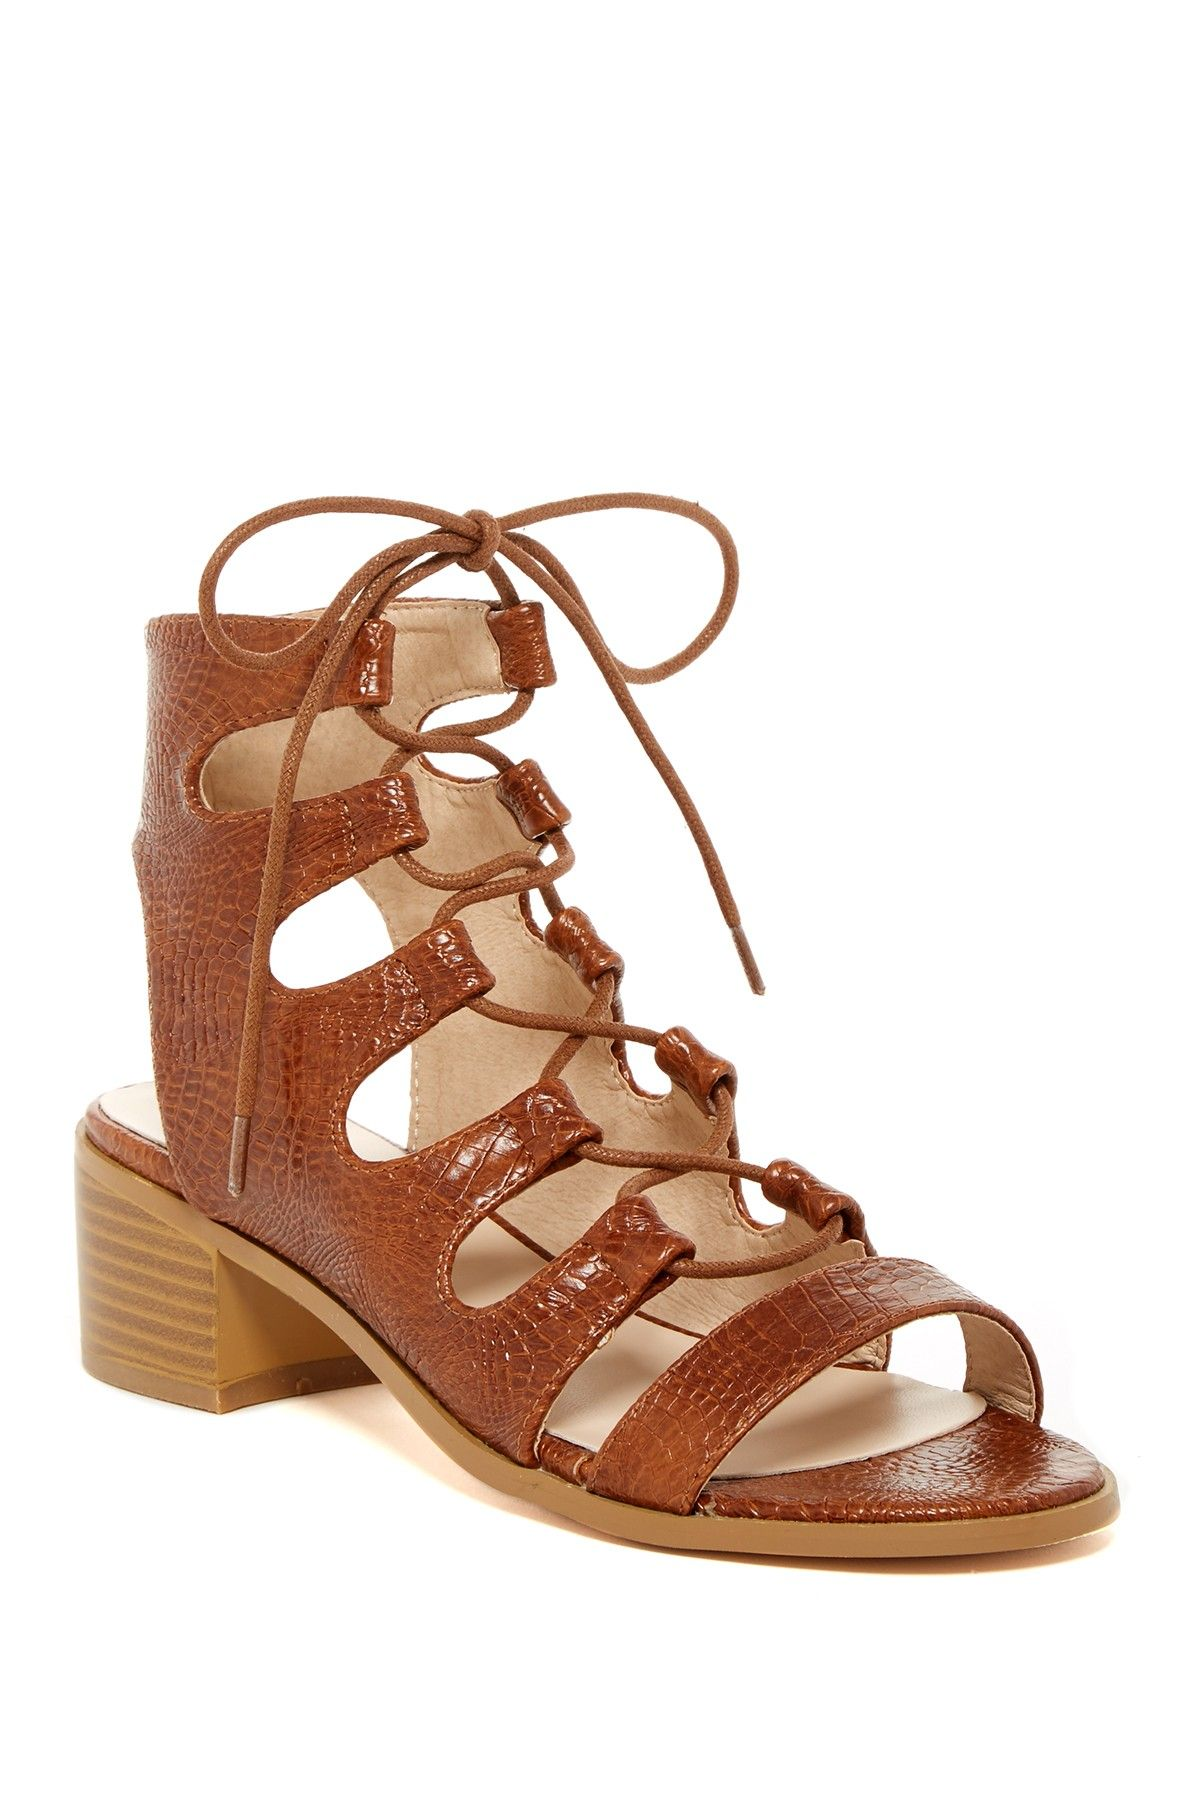 06abcdaf2 Adelaide Chunky Heel Sandal. Adelaide Lace-Up Sandal by Catherine ...